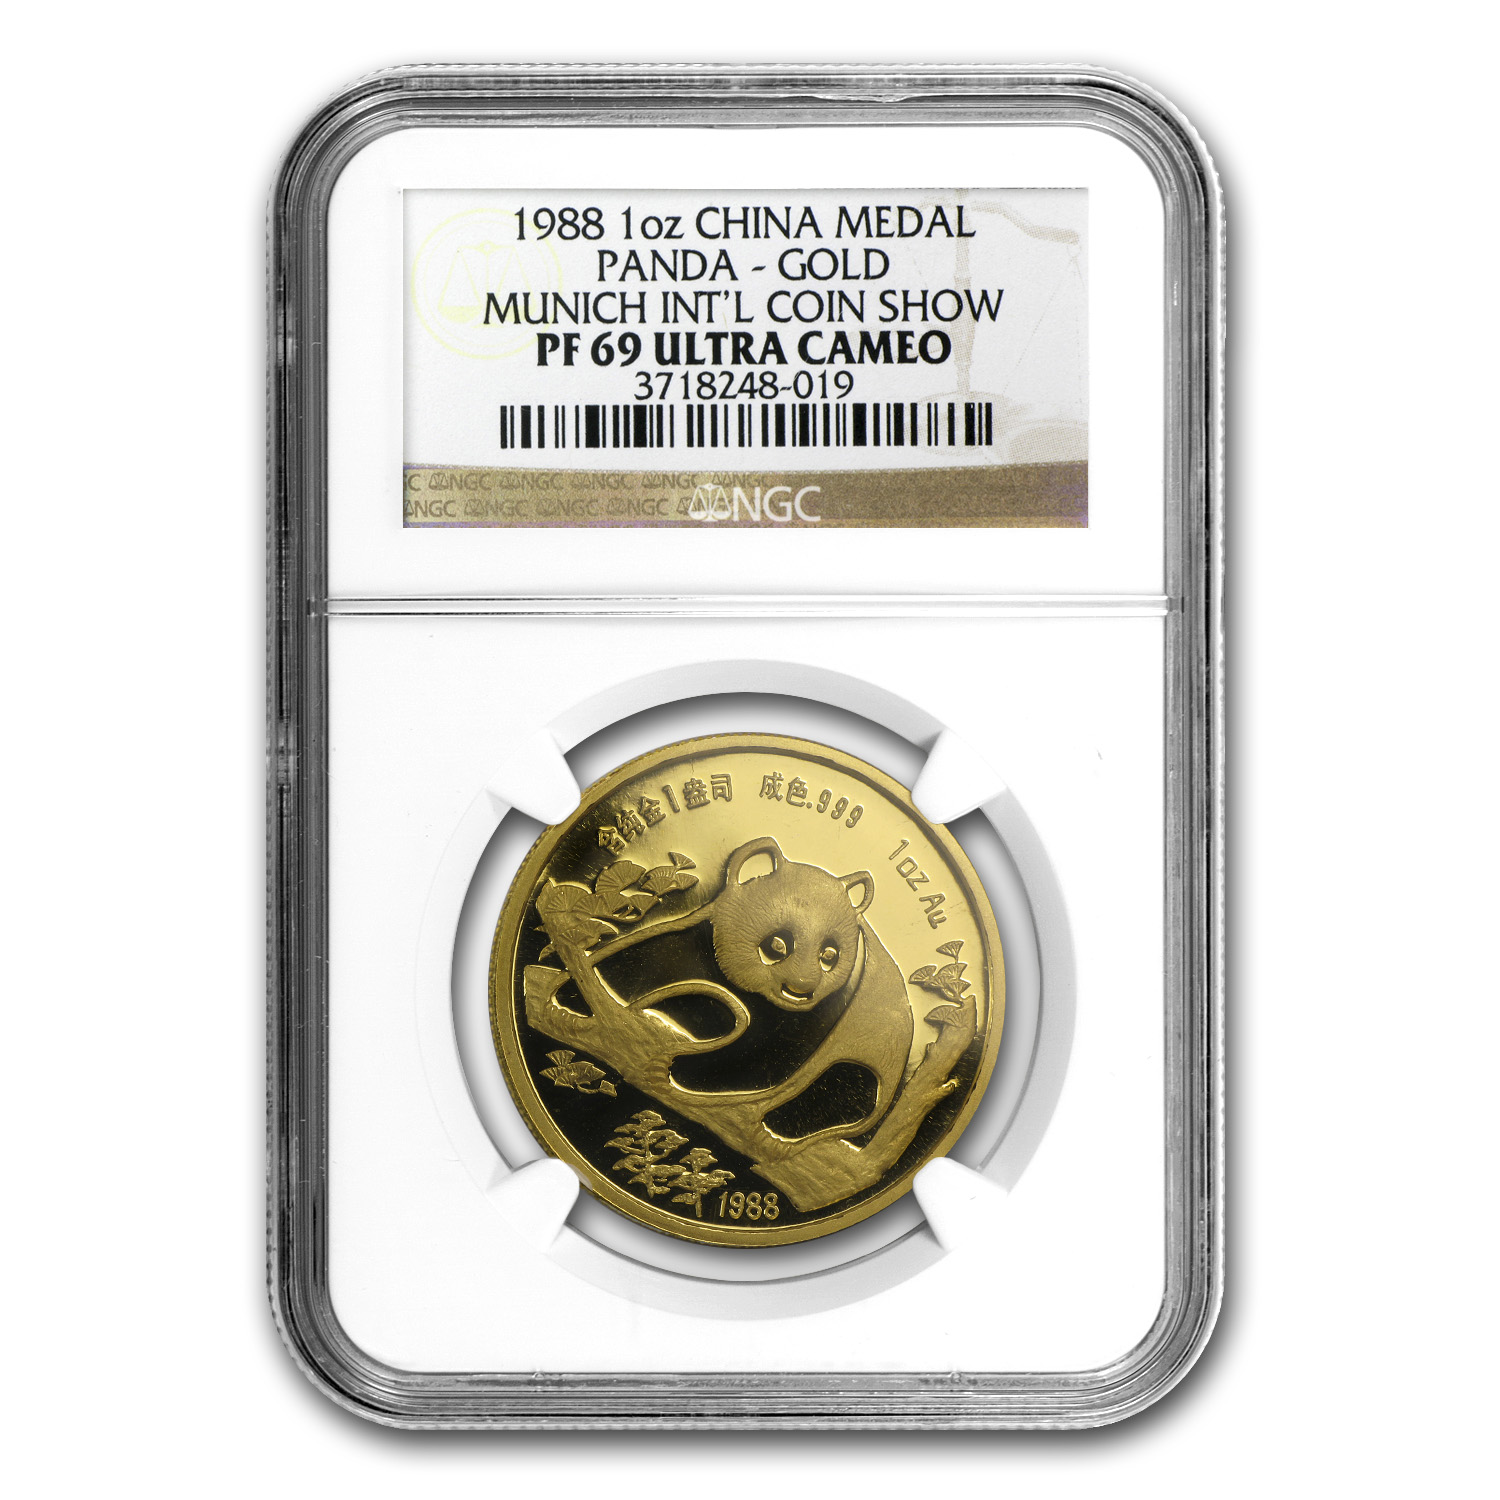 1988 1 oz Gold Chinese Panda PF-69 NGC (Munich Coin Fair Medal)